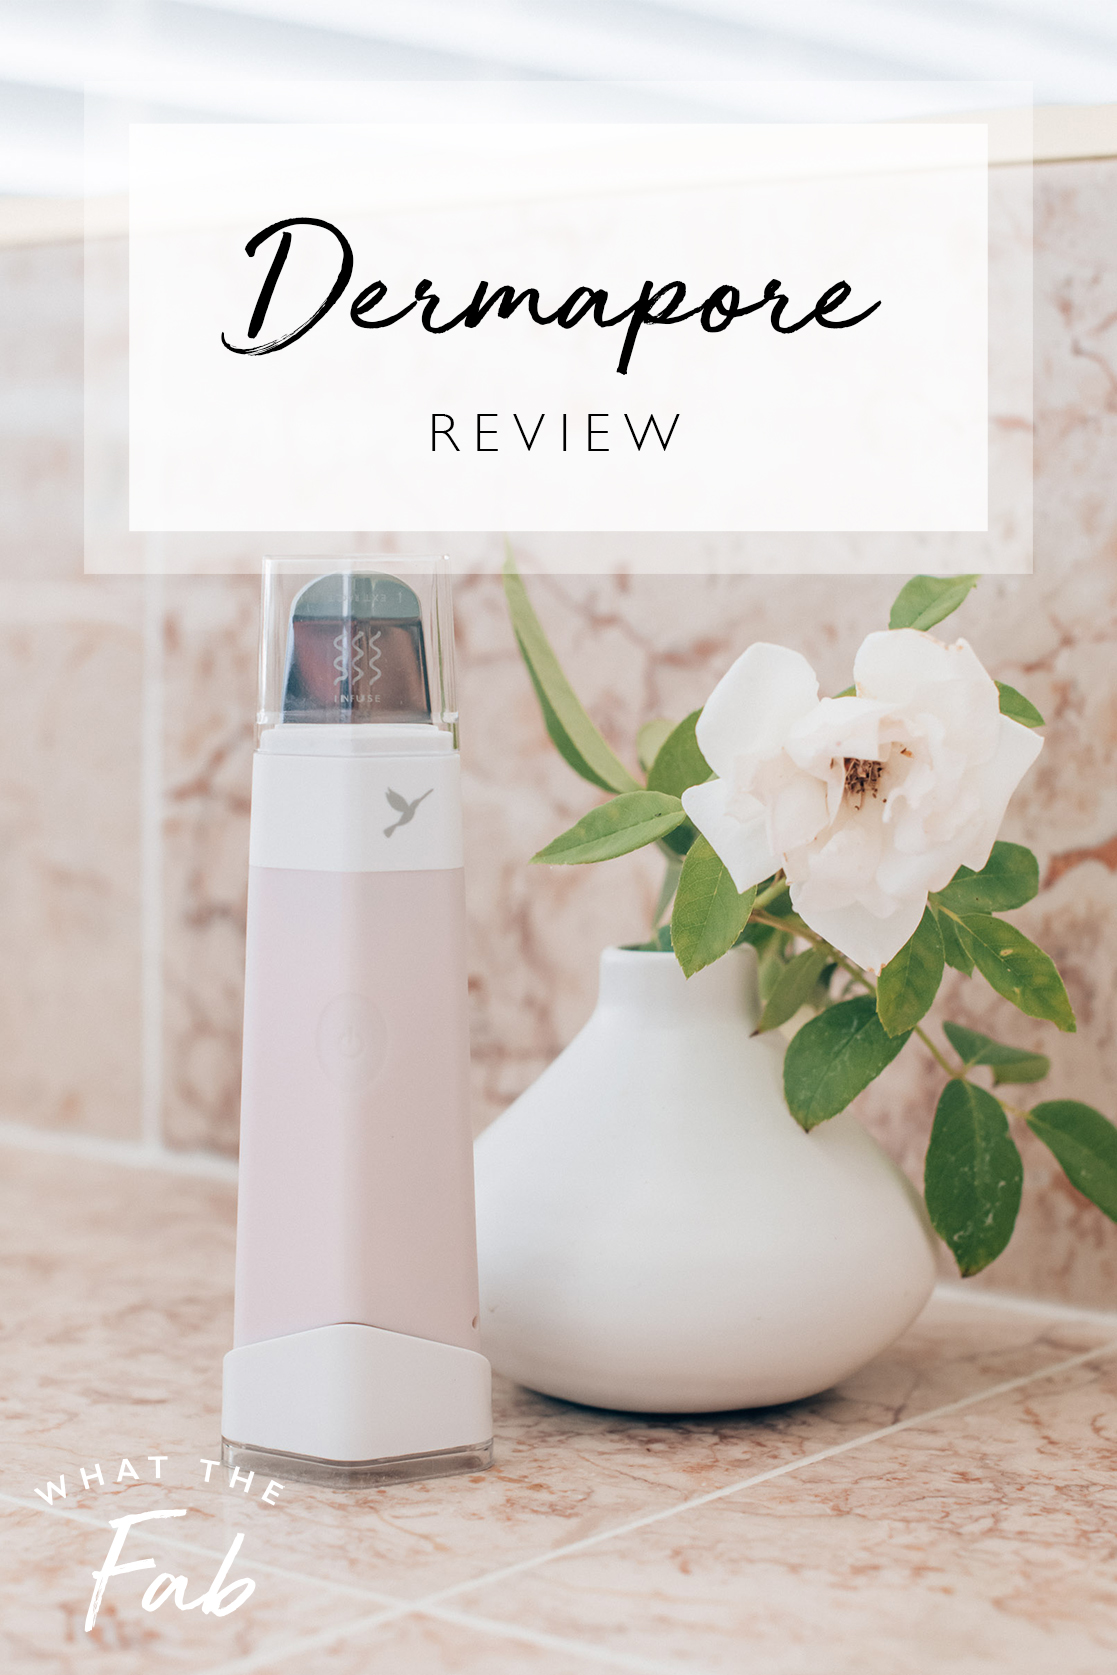 Dermapore review, by beauty blogger What The Fab